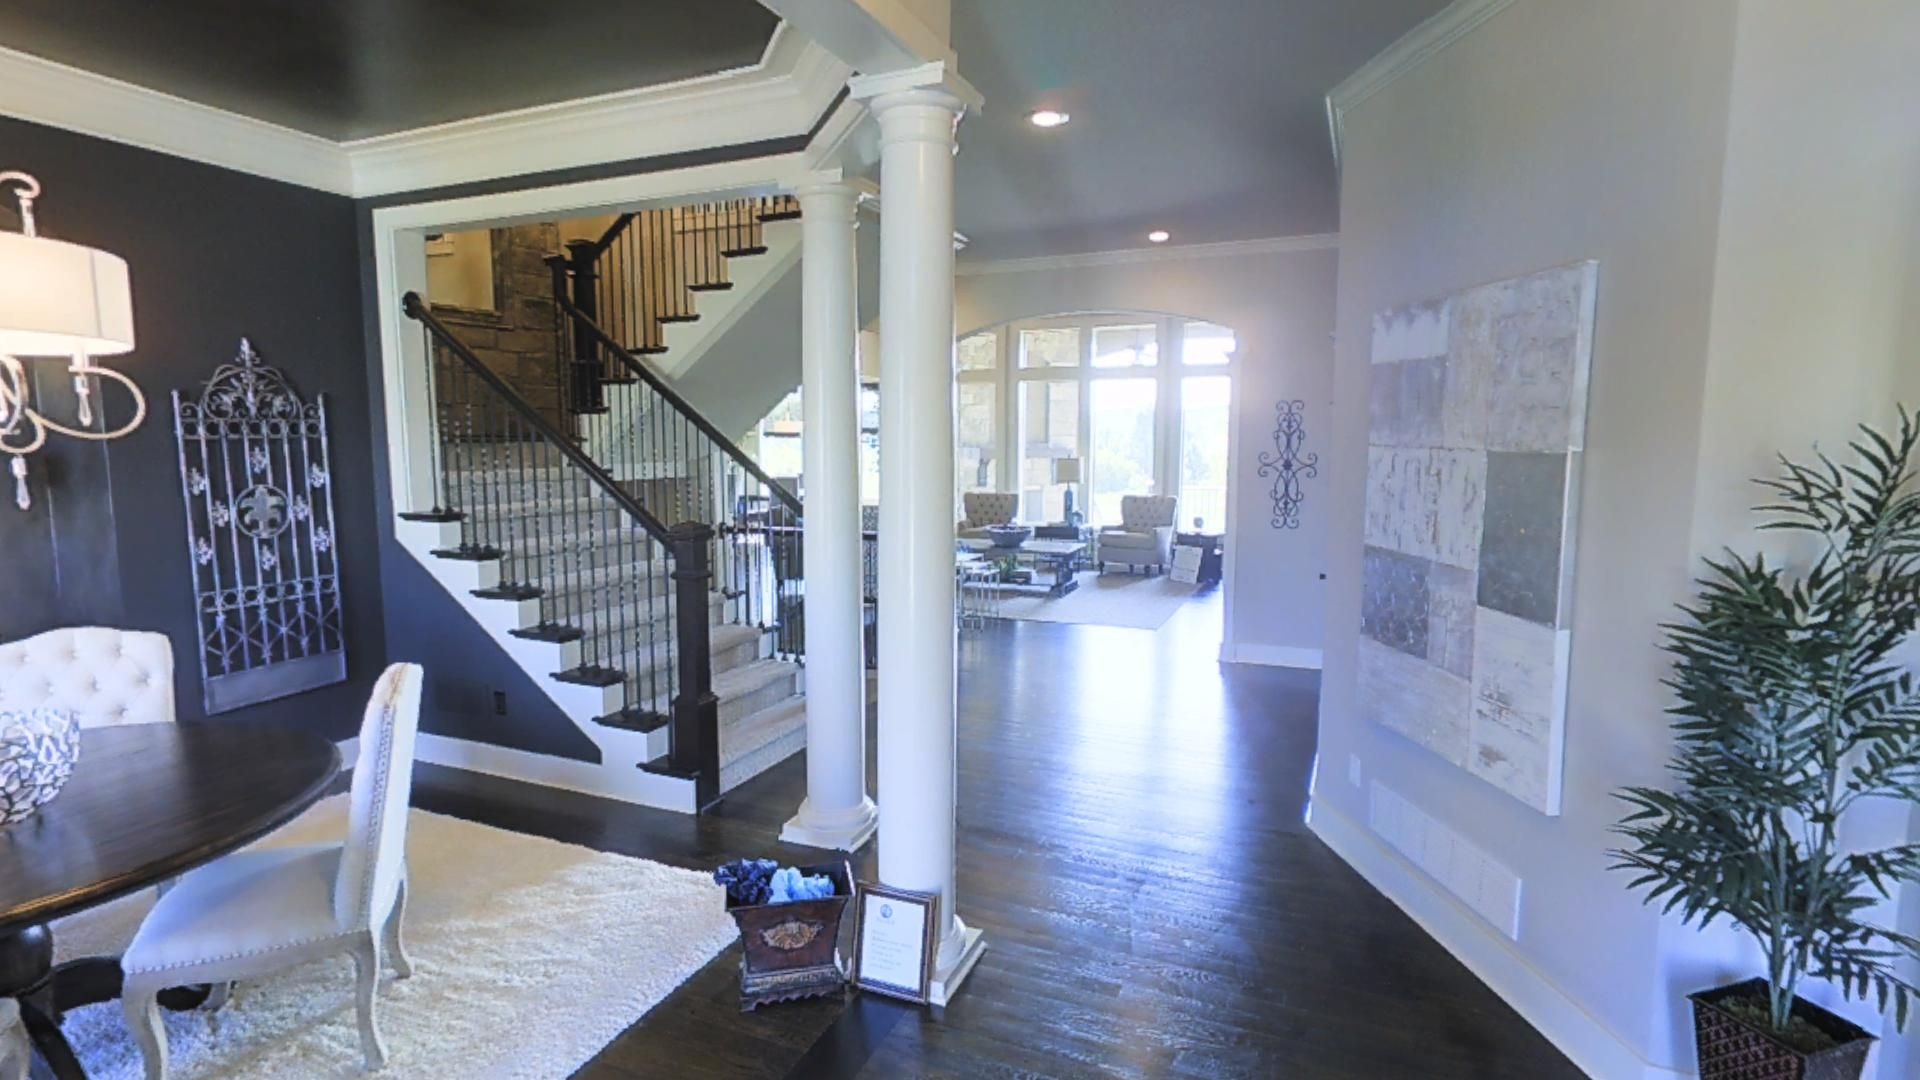 This is the Fresh Picture Of Patio Homes for Sale Overland Park Ks